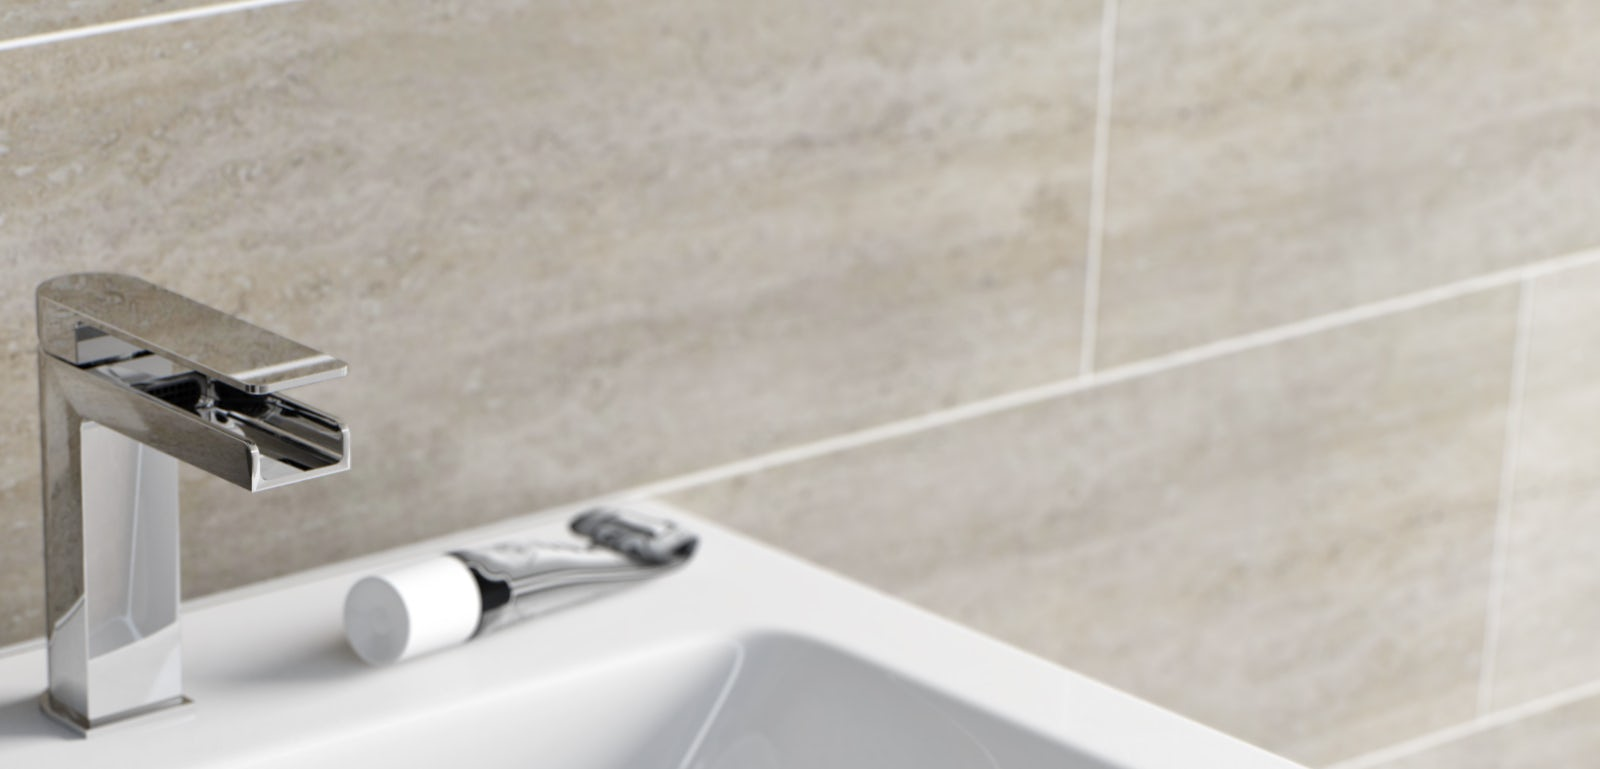 How to fit a basin mixer tap